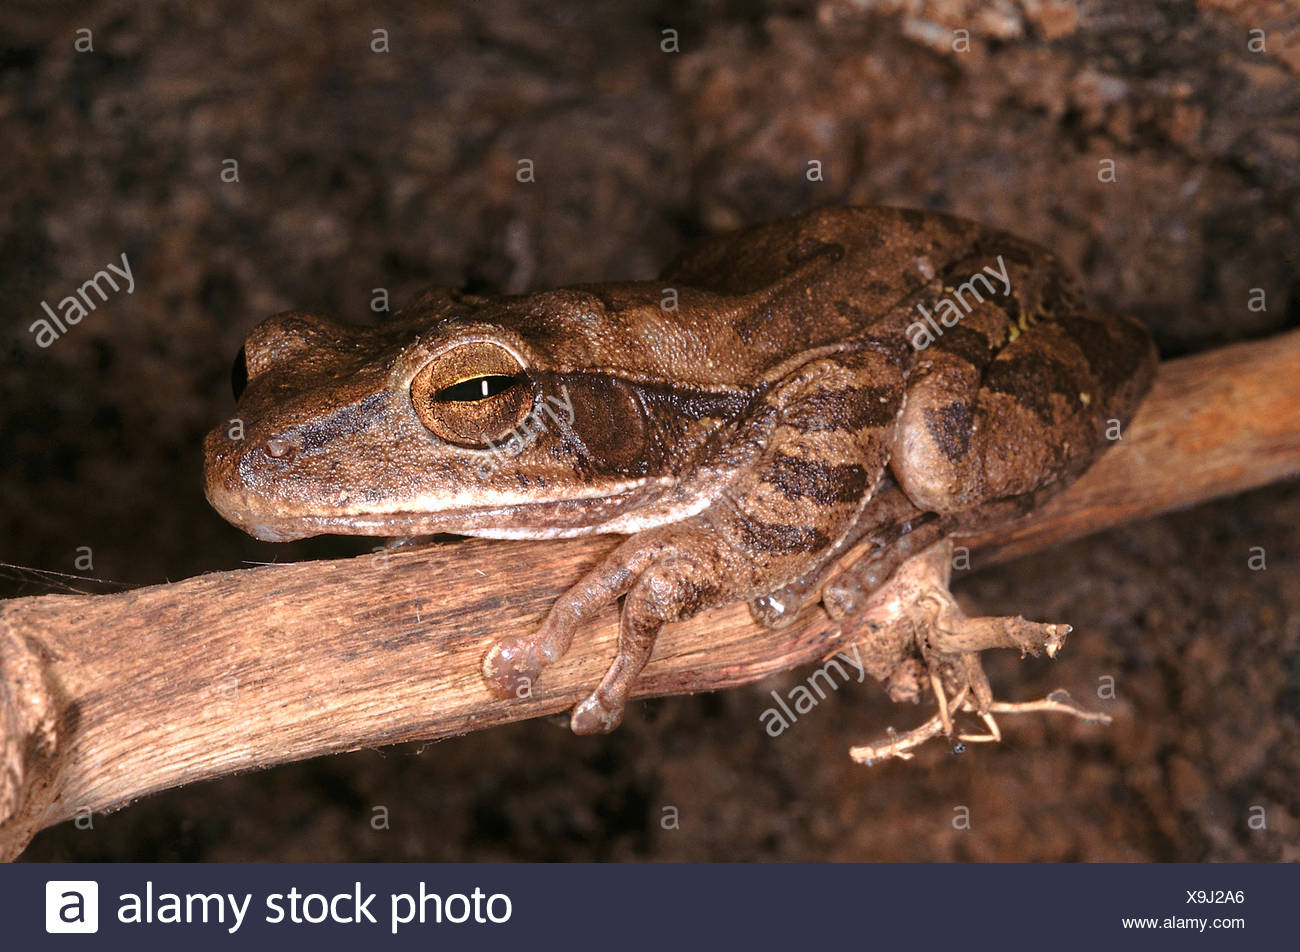 Polypedates Maculatus. Common tree frog. A medium sized frog that is found in moist deciduous forest areas. It lives on trees - Stock Image